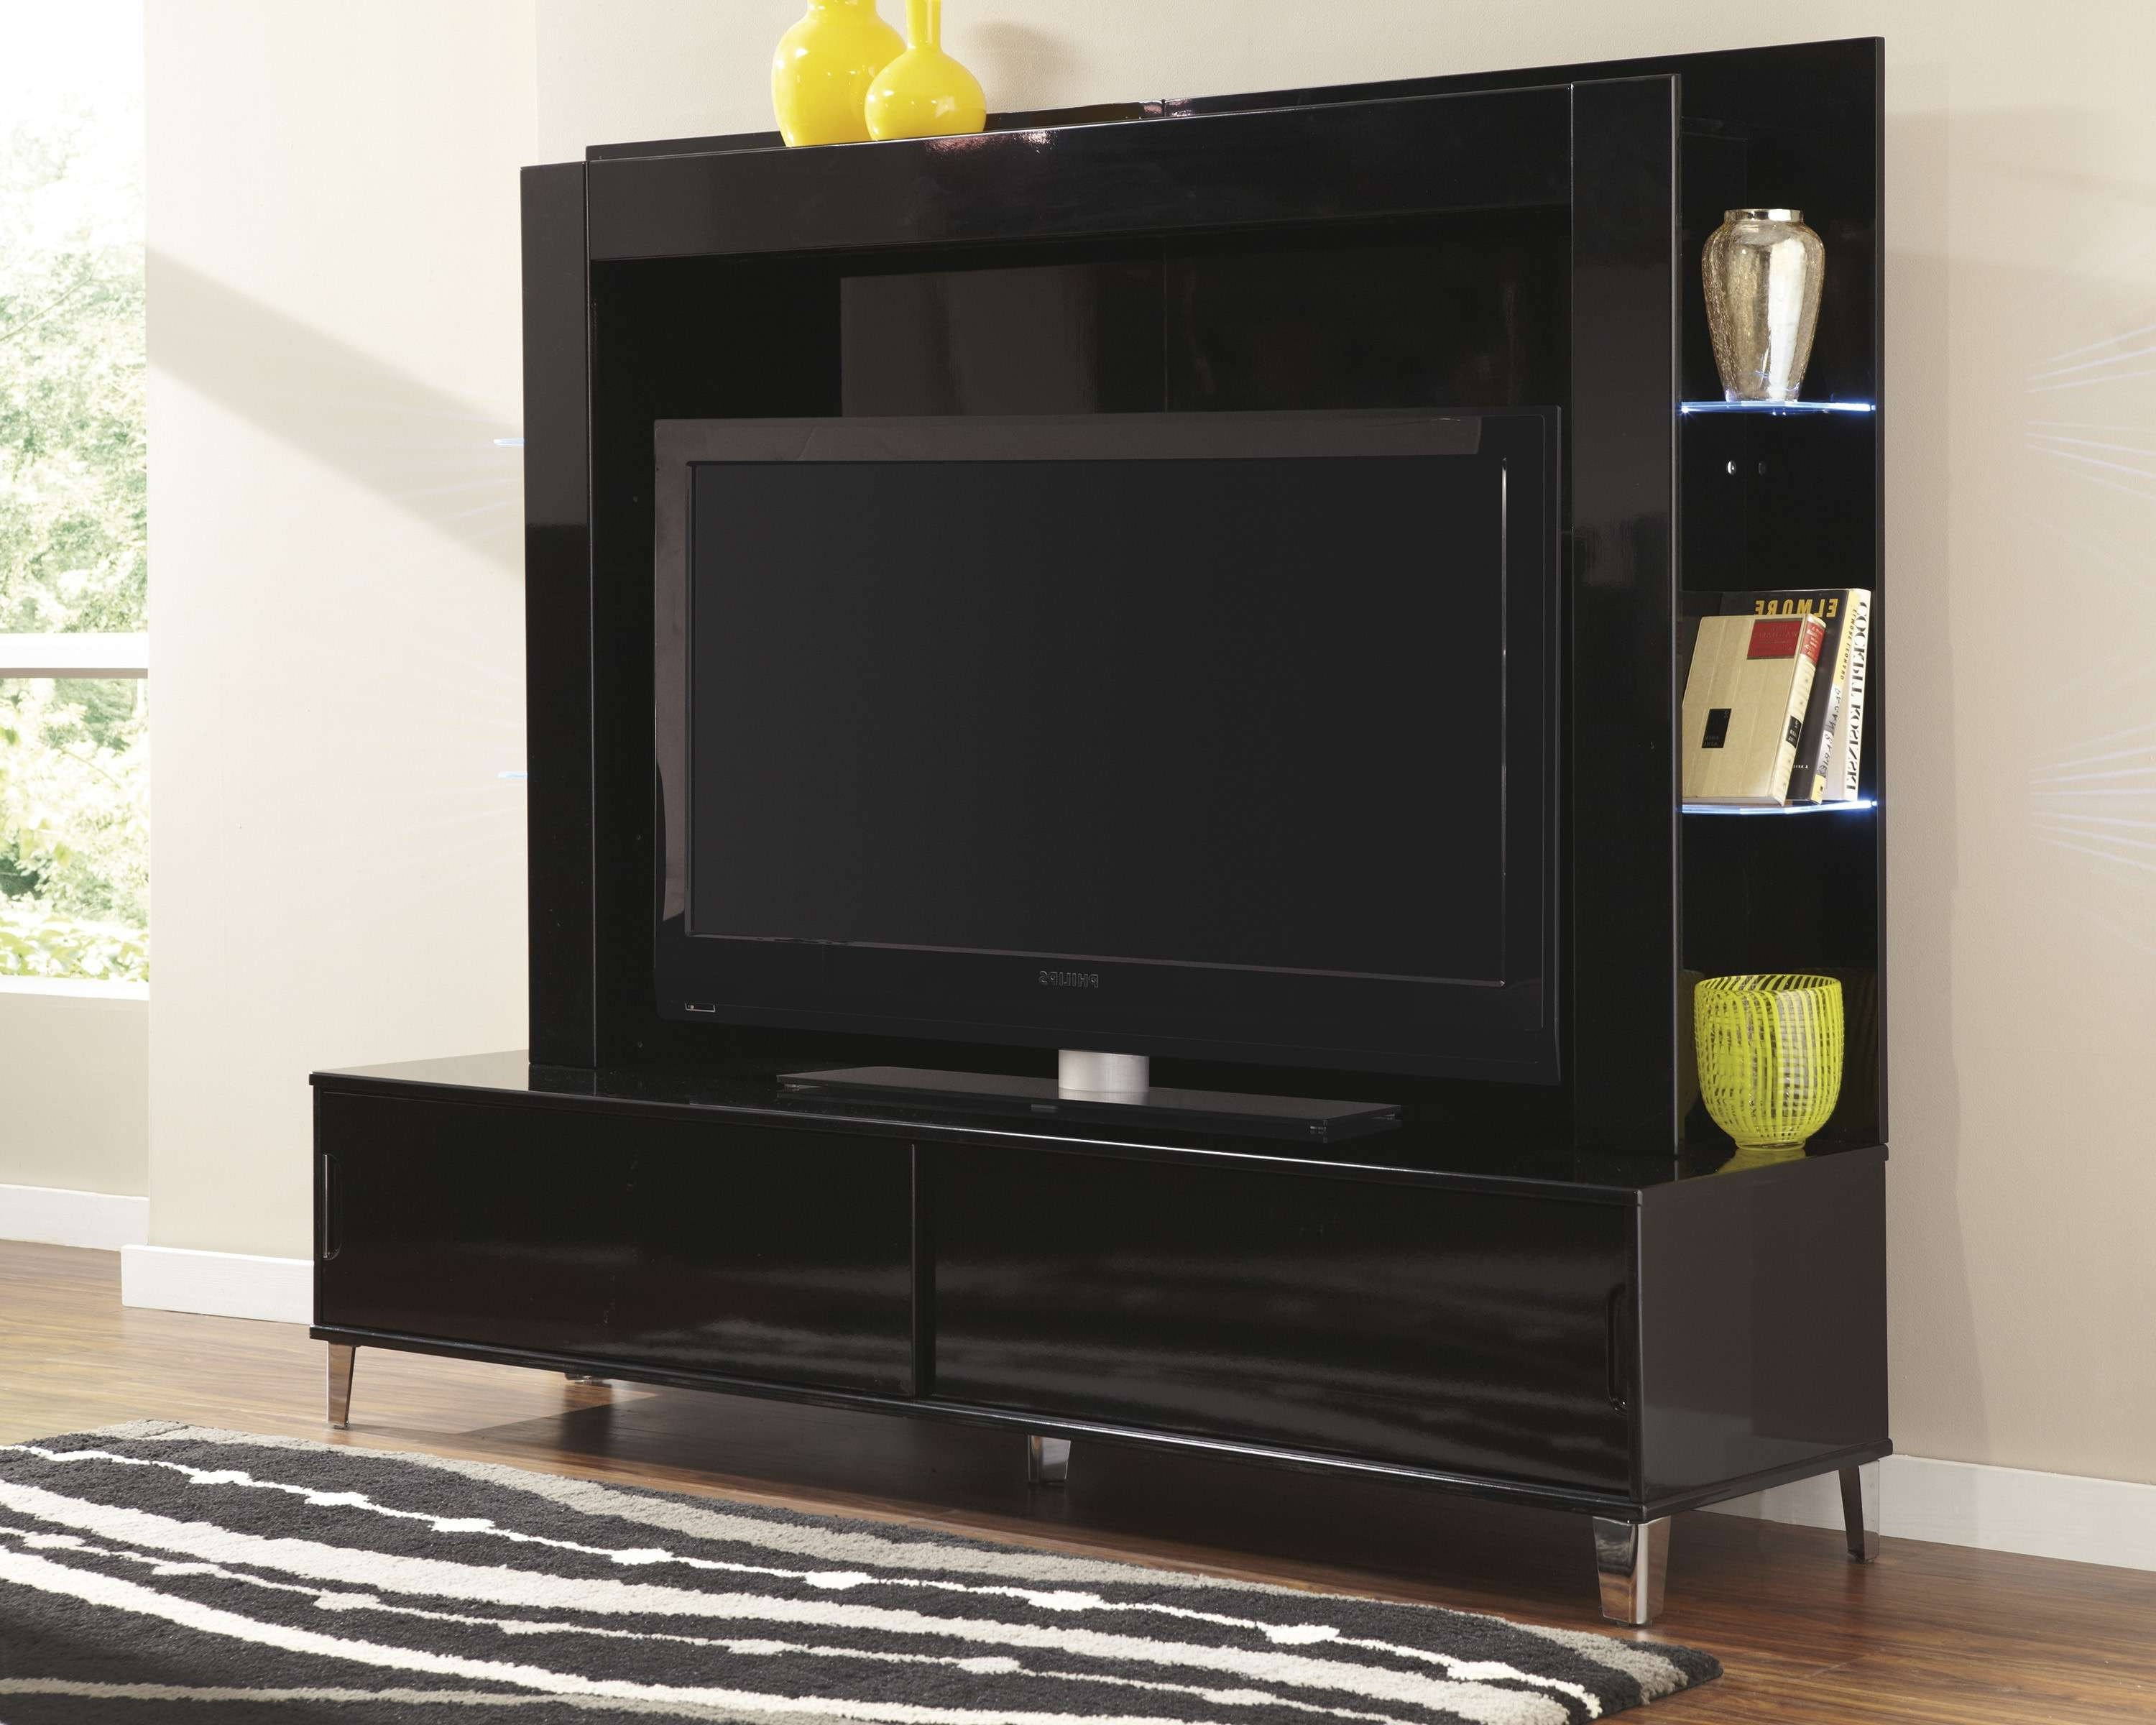 Furniture : Exotic Tall Corner Tv Stands For Flat Screens Flat Intended For Contemporary Tv Stands For Flat Screens (View 4 of 15)